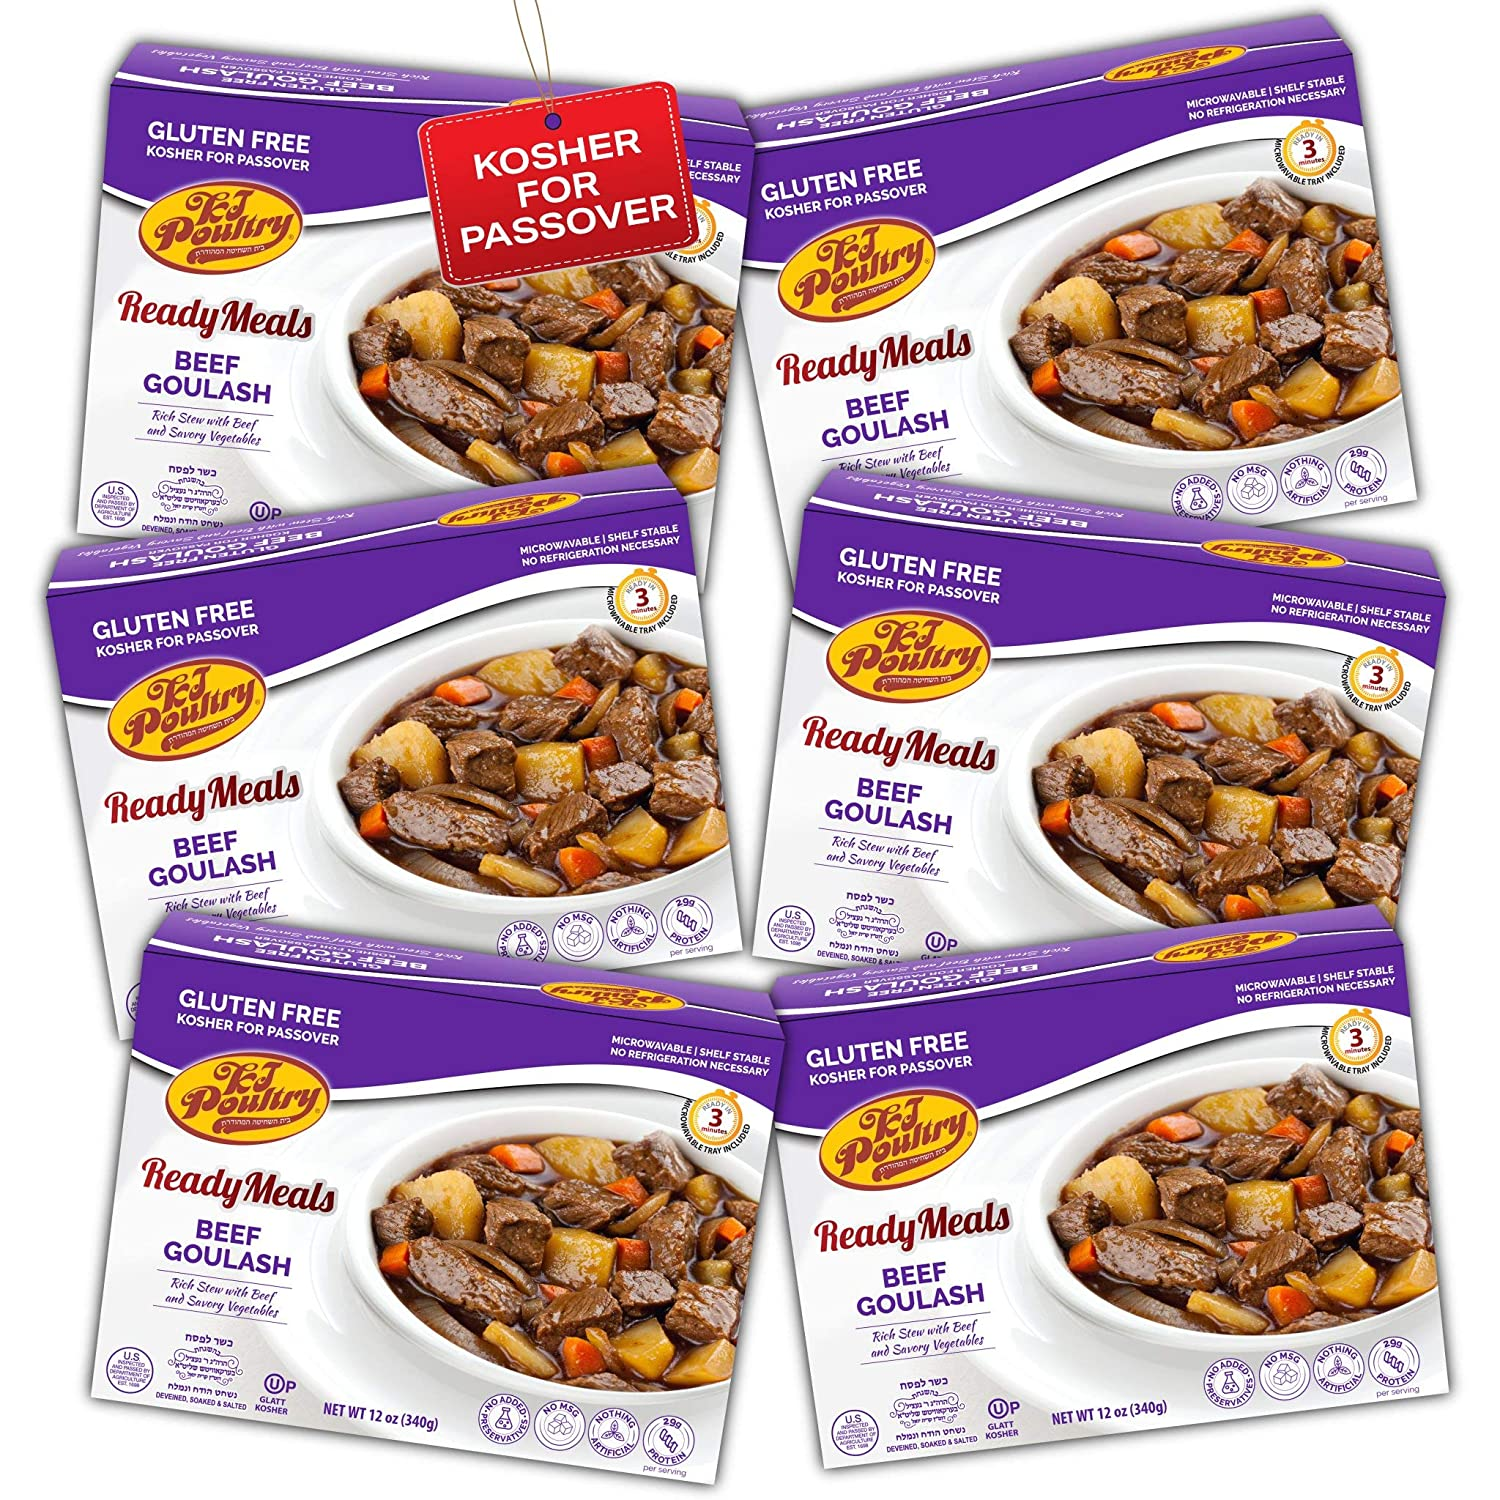 Kosher For Passover Food Beef Goulash - MRE Meat Meals Ready to Eat - Gluten Free (6 Pack) - Prepared Entree Fully Cooked, Shelf Stable Microwave Dinner